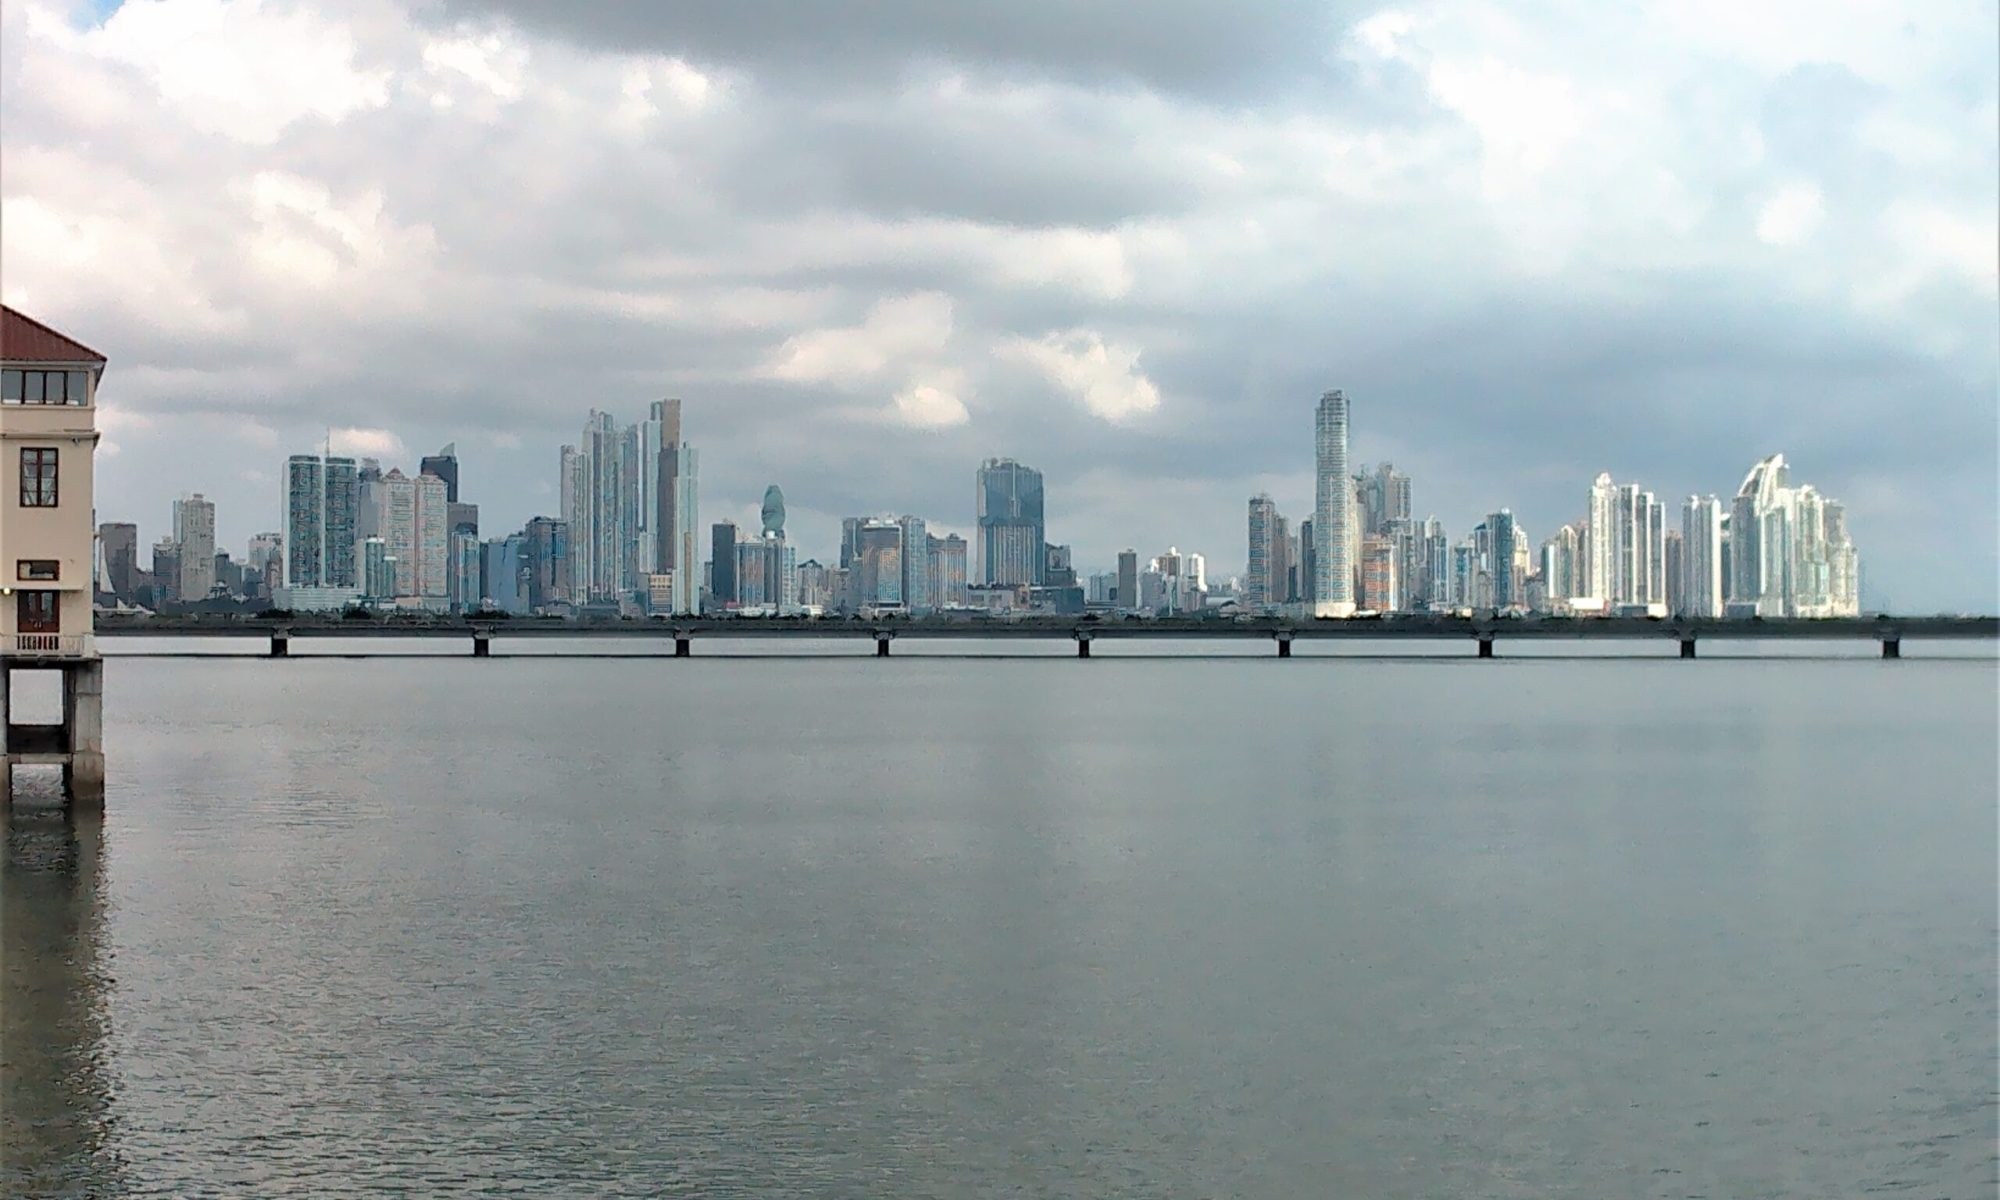 K in Motion Travel Blog. Party in Panama. Panama City Skyline